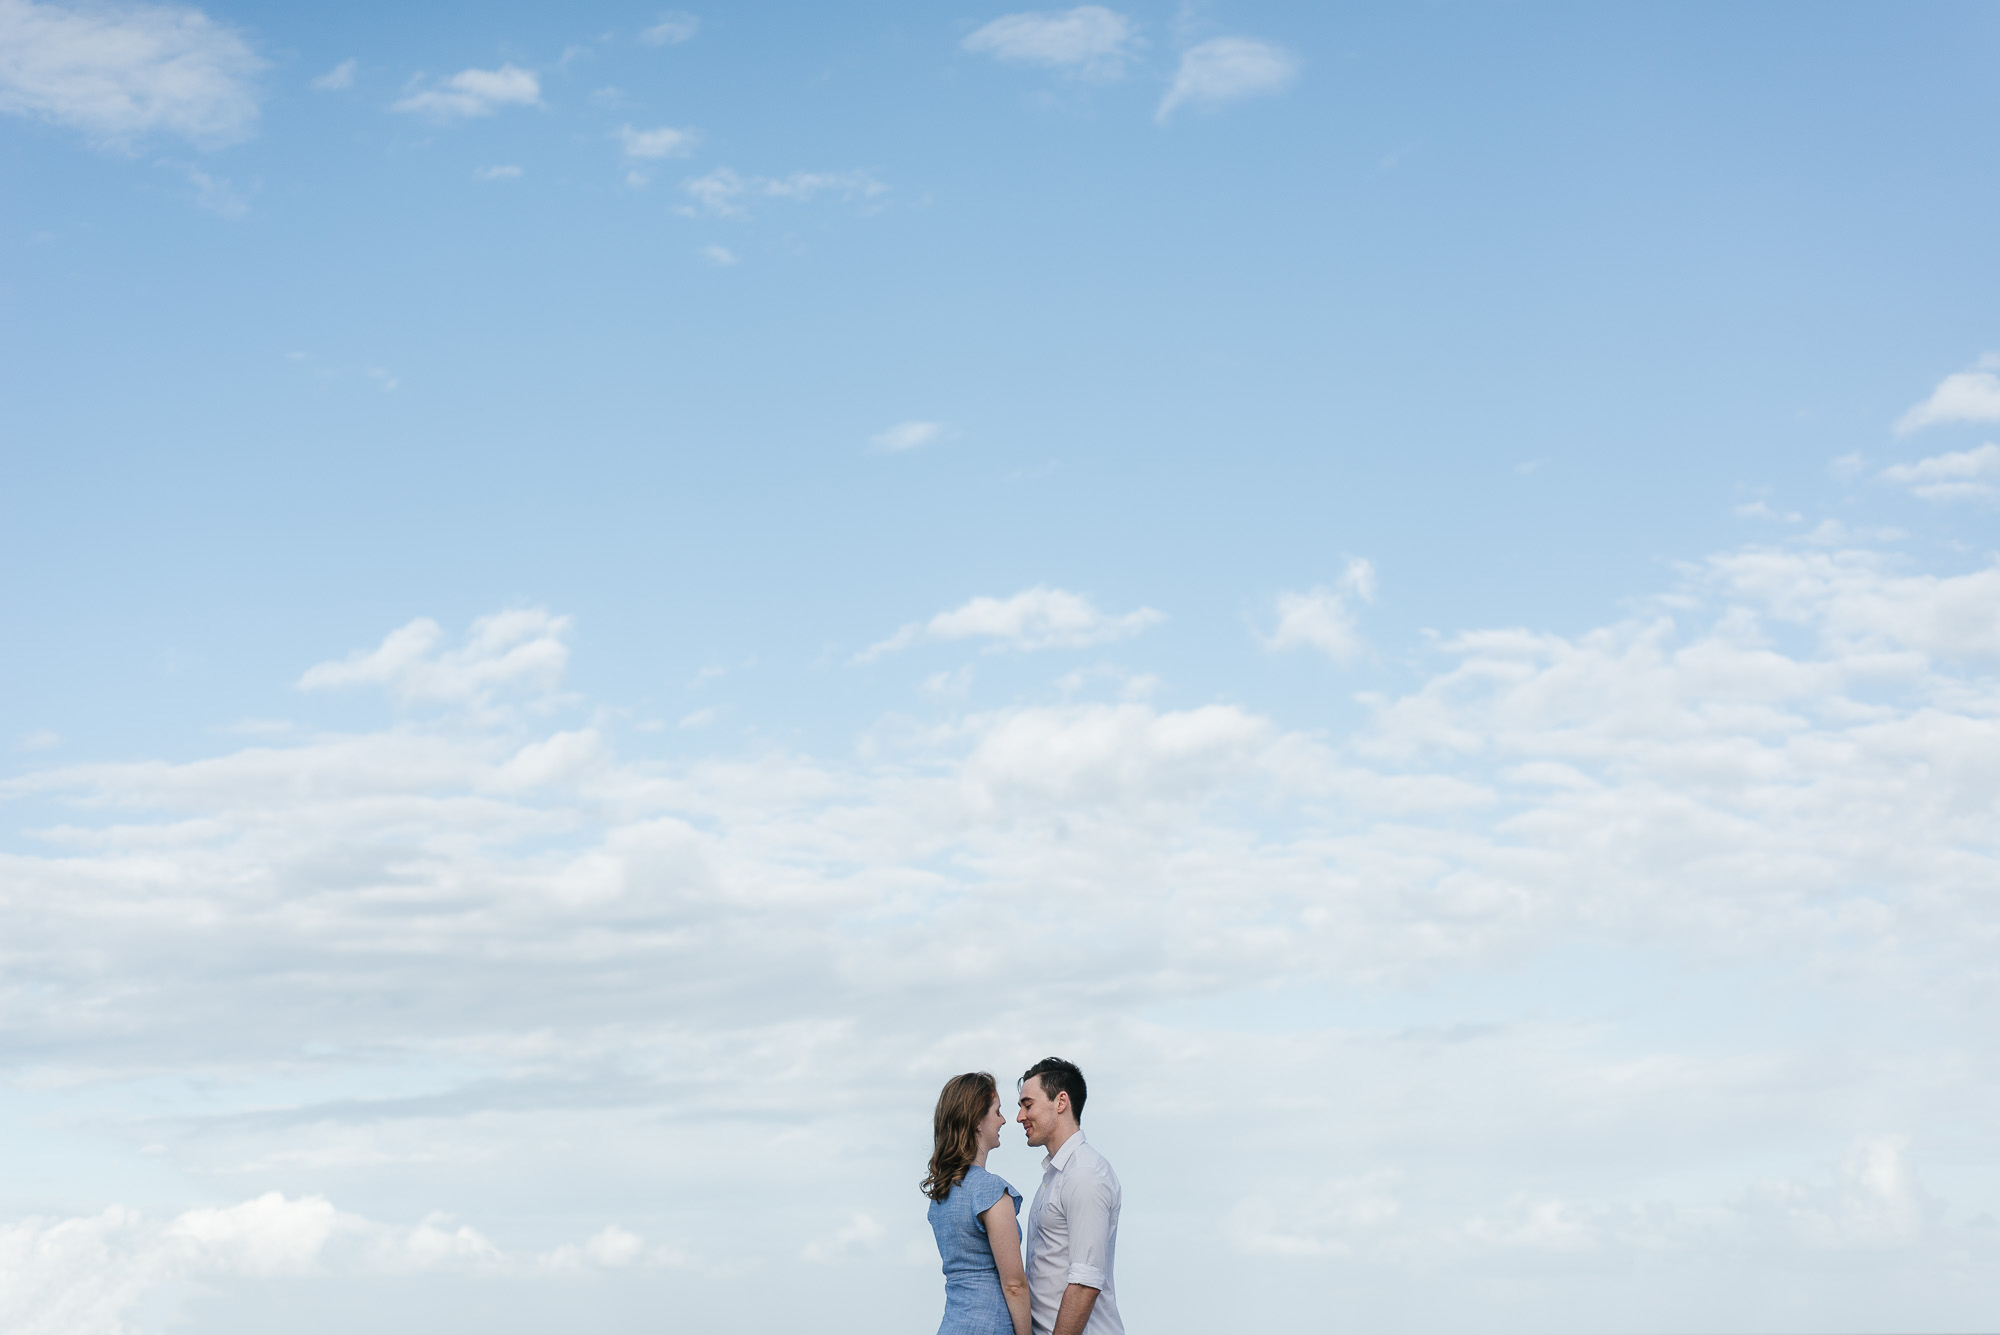 PhotographybyRenata_Proposal_Shoot_Watsons-Bay-Camp_Cove-112.JPG